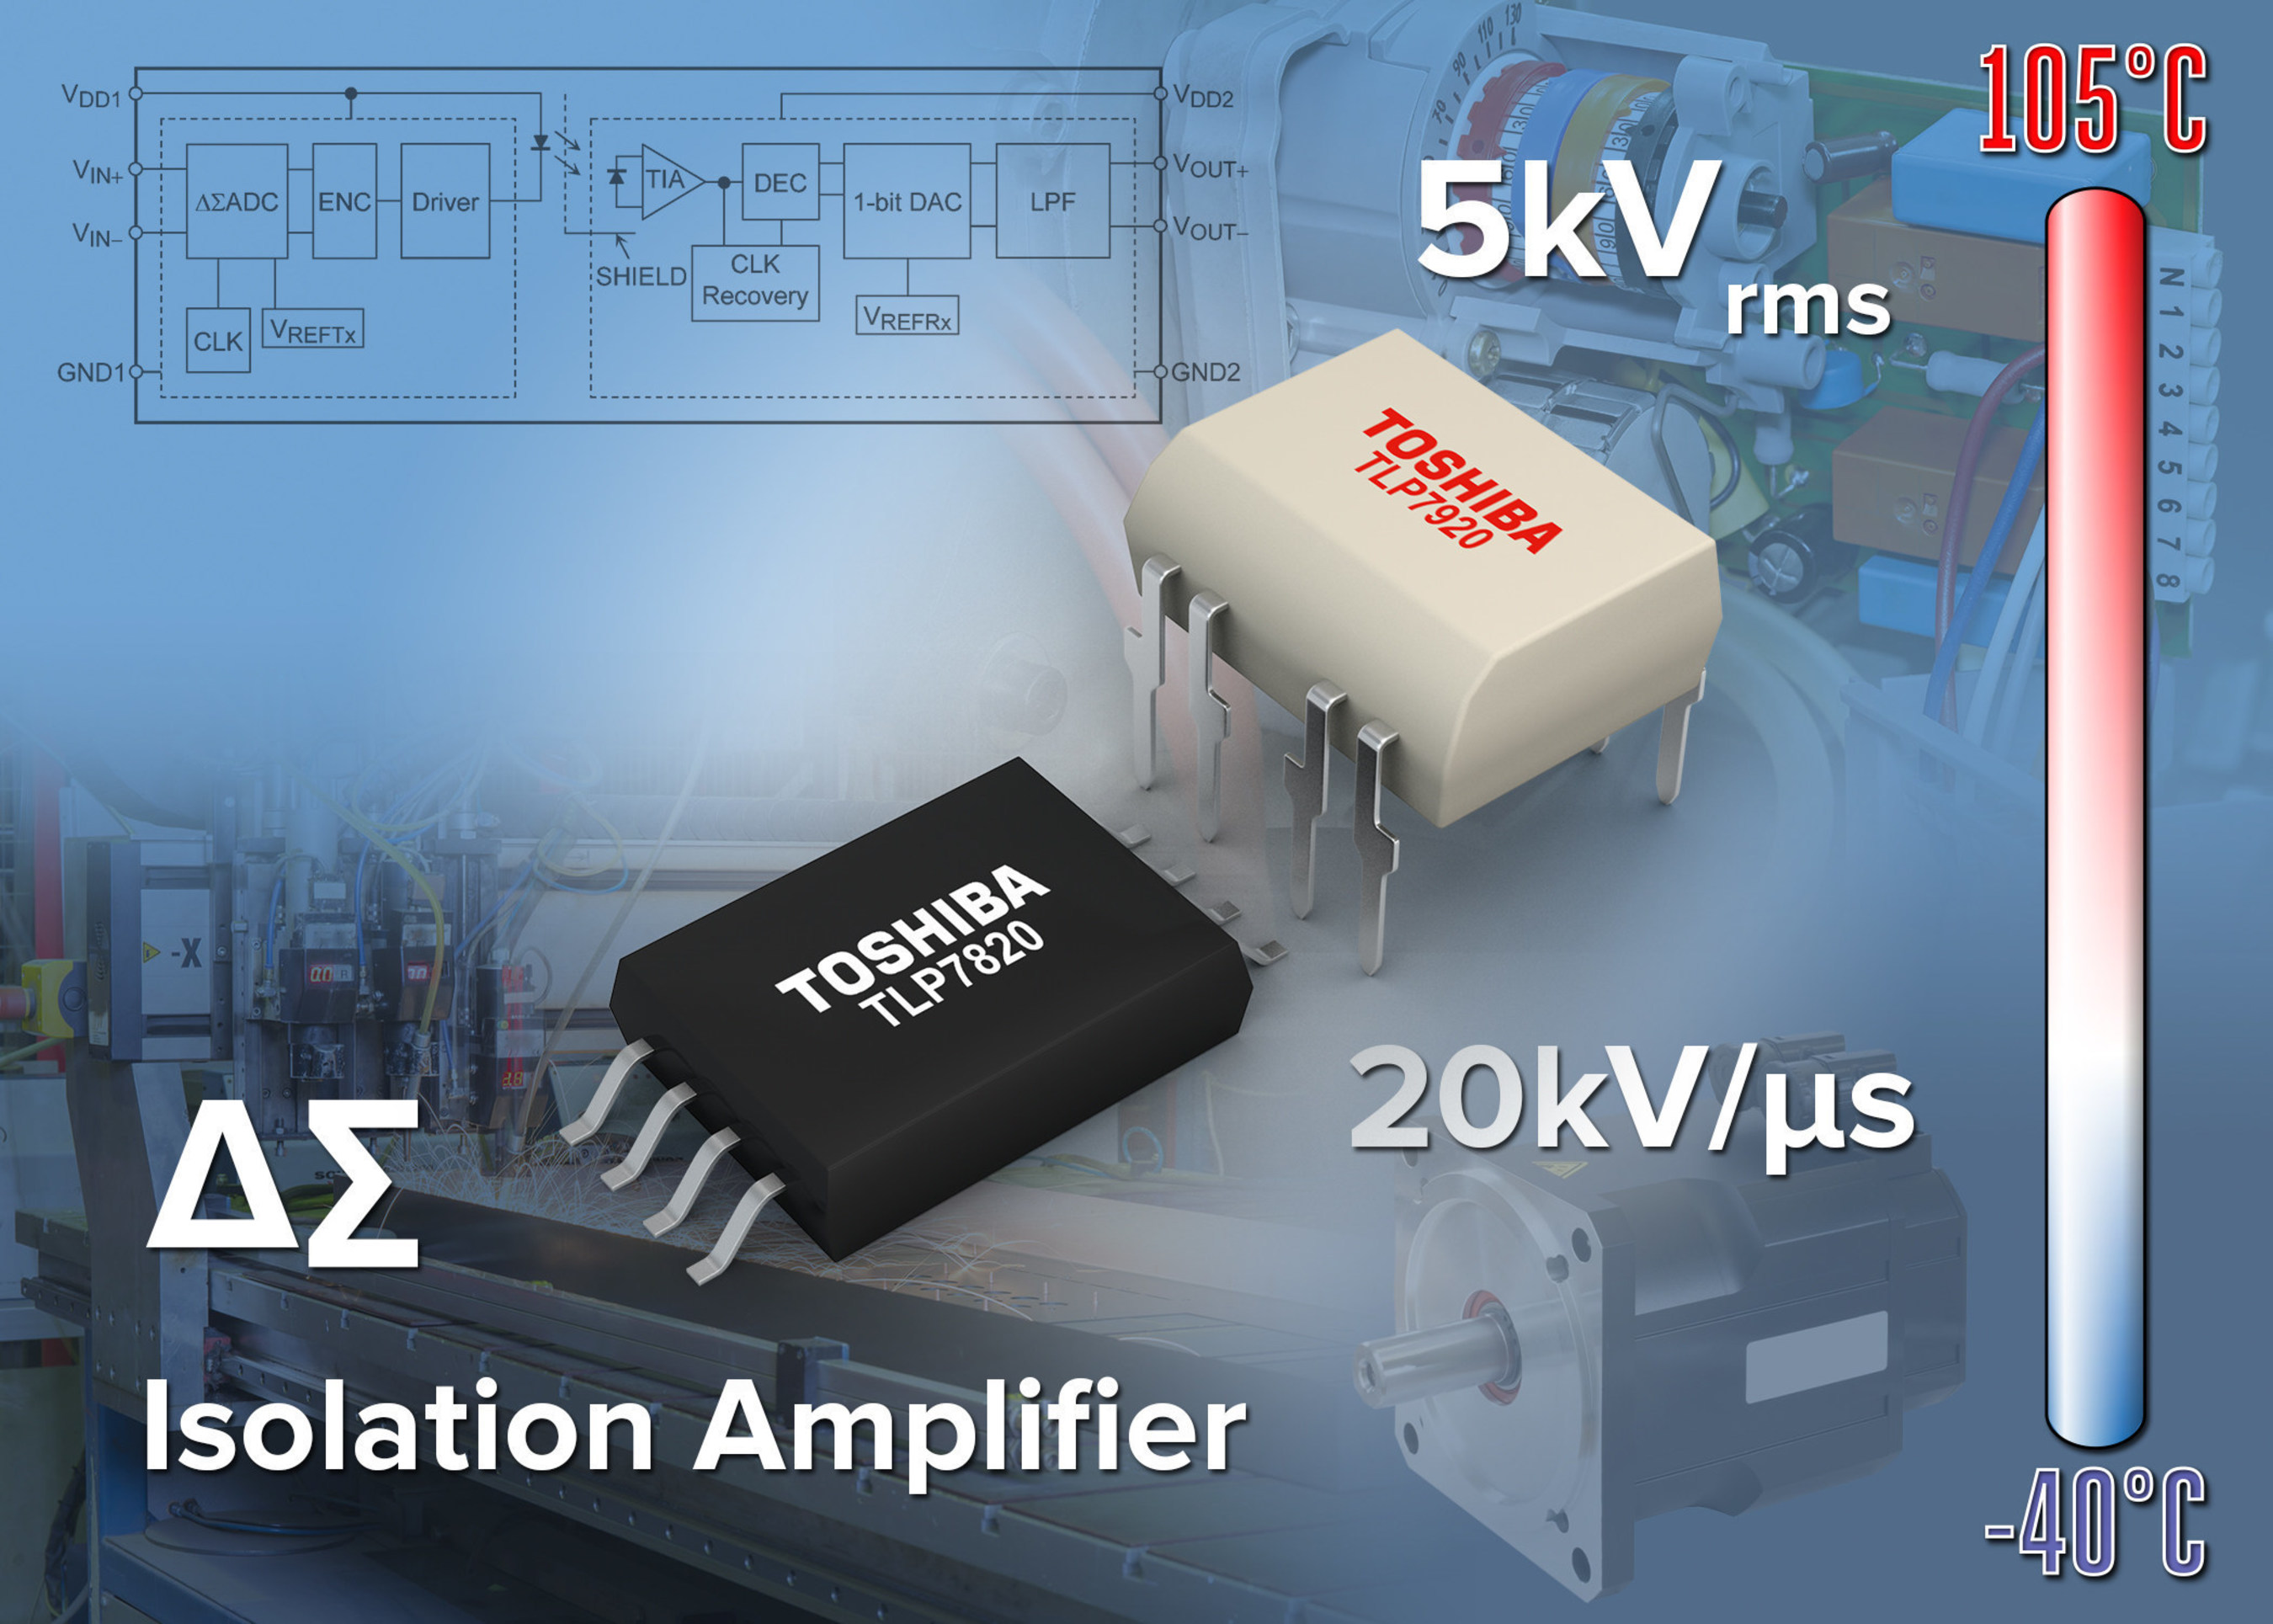 Toshiba Introduces New High Accuracy Optical Analog Isolation Amplifiers